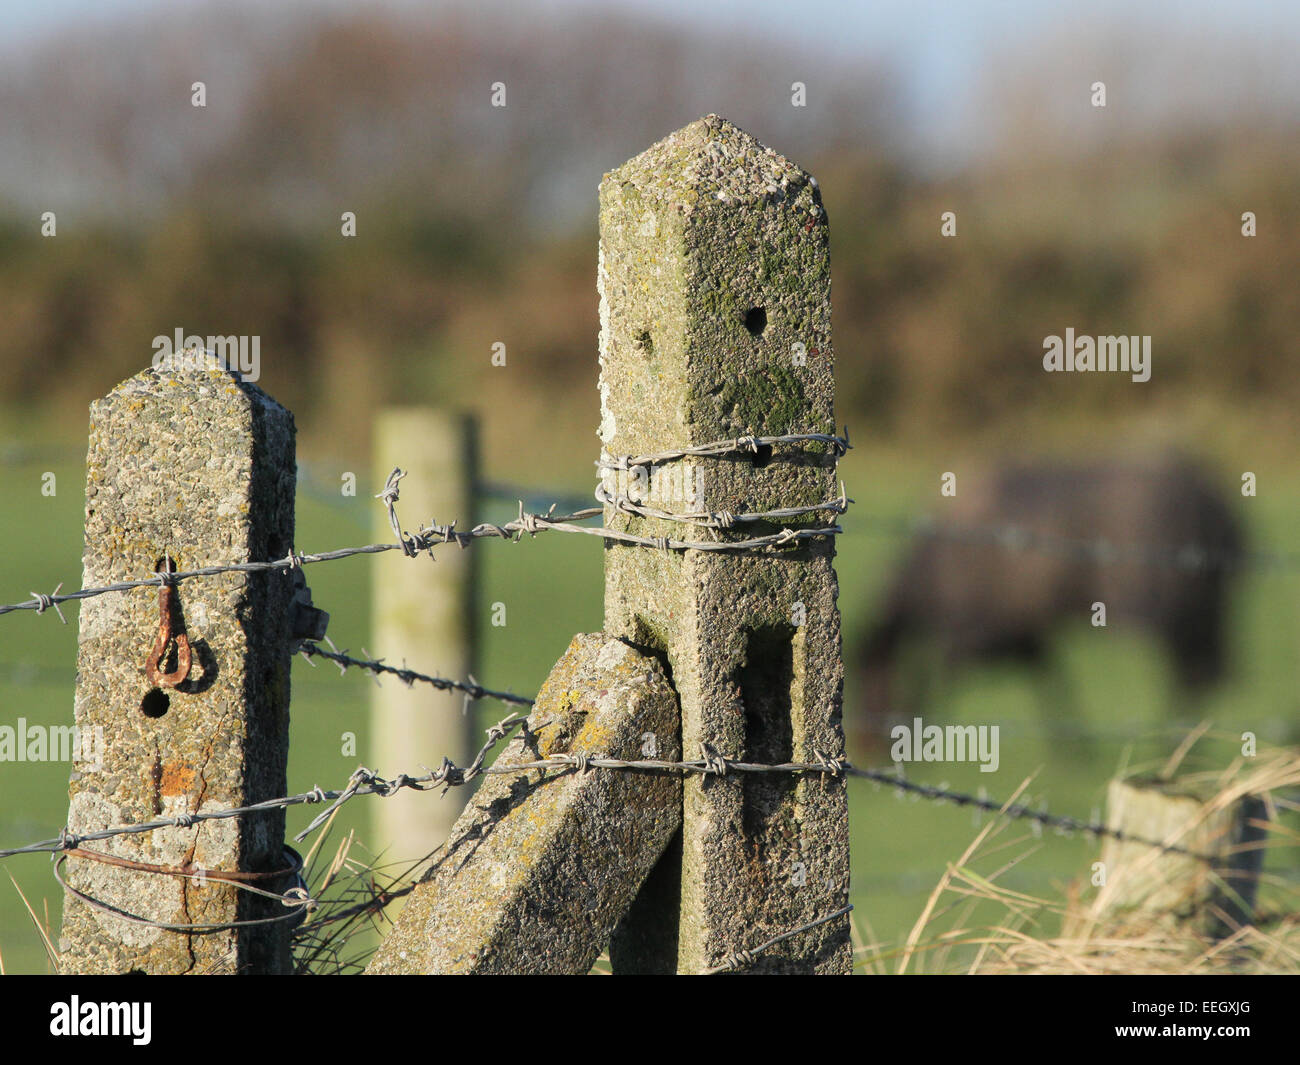 Concrete fence post with barbed wire - Stock Image